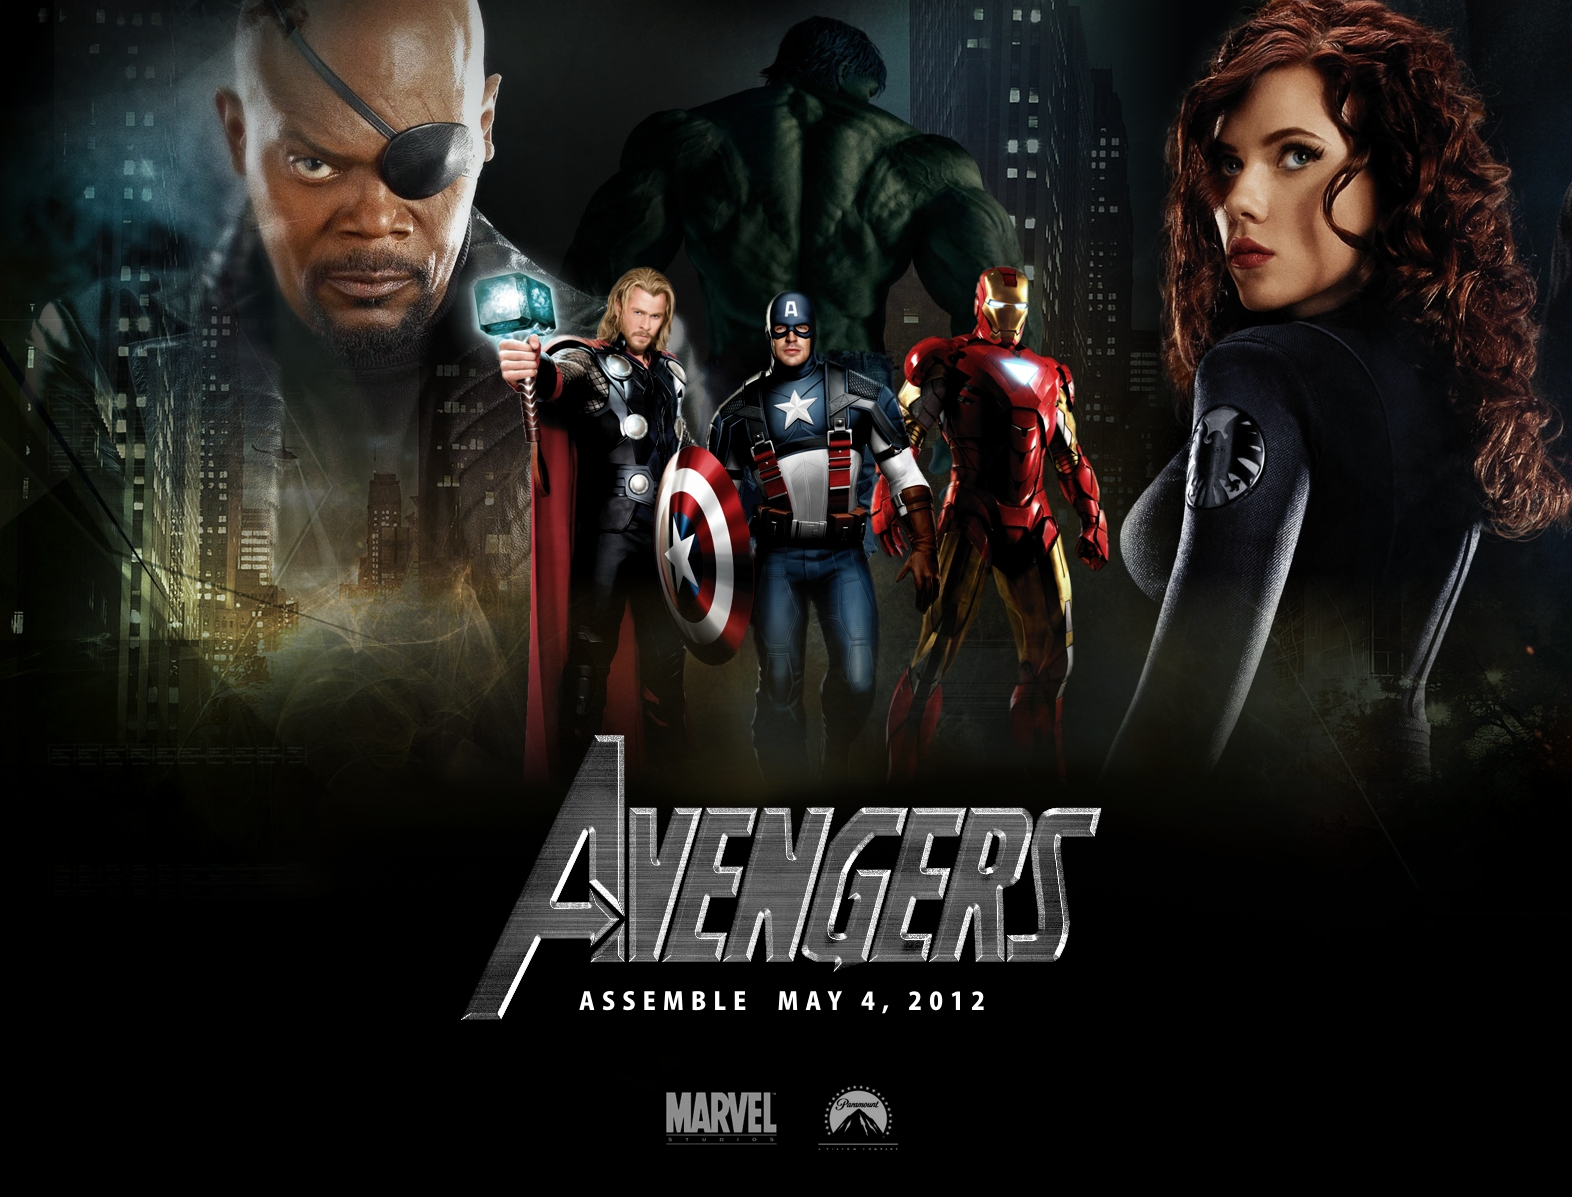 Avengers Movie 2012 April